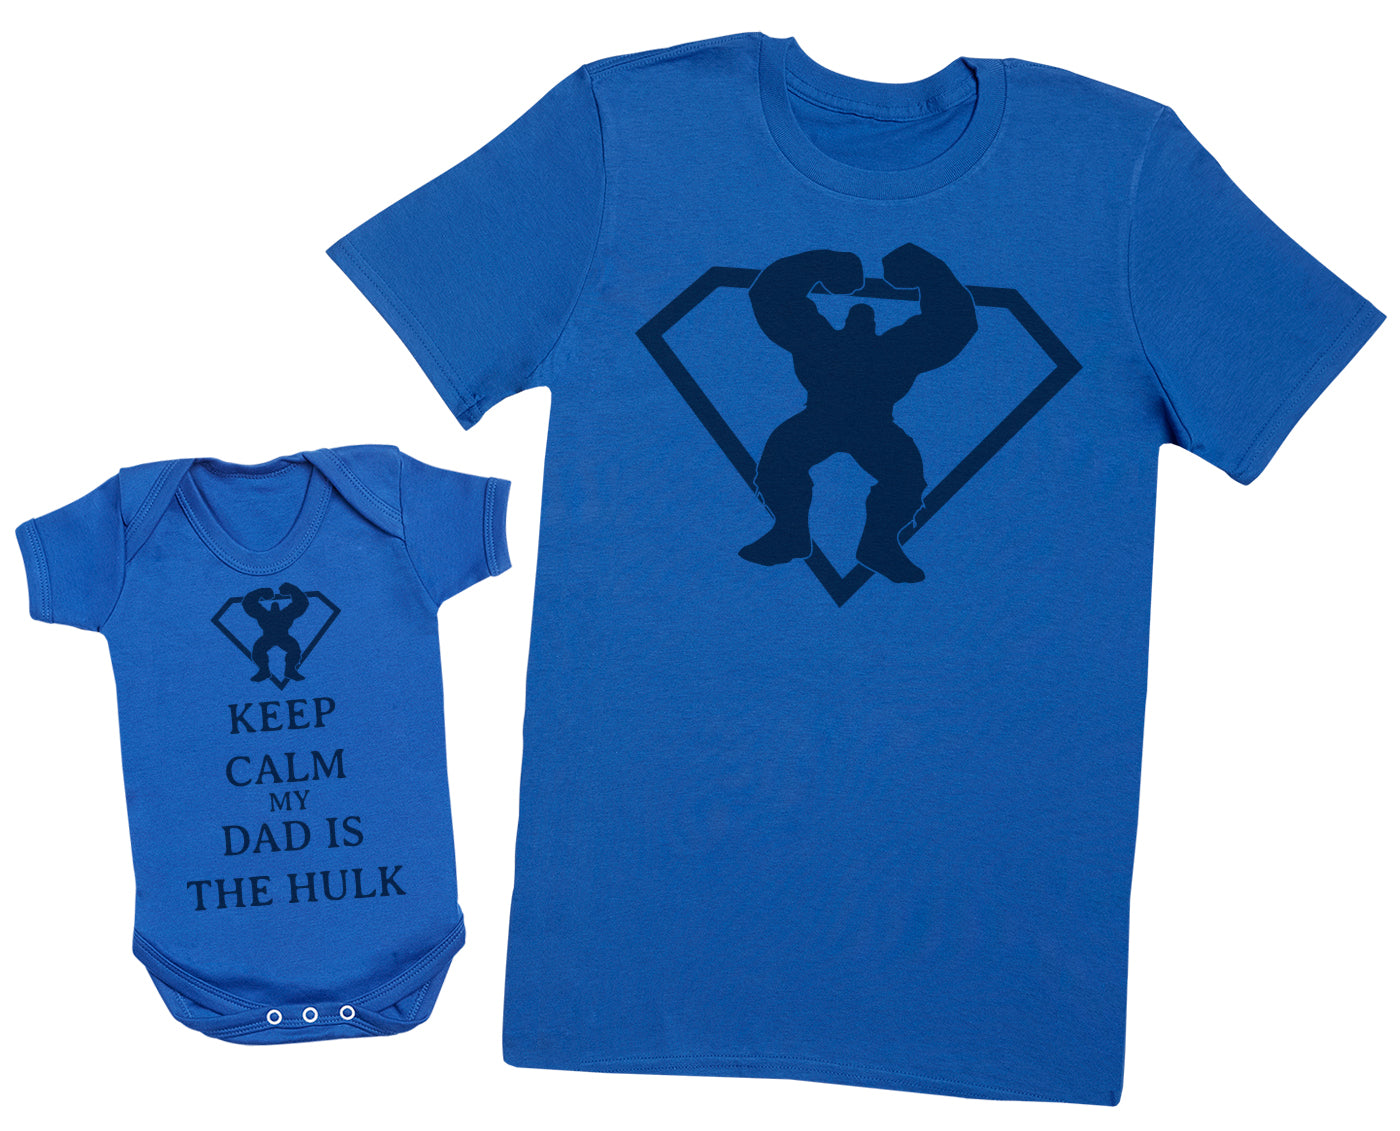 Keep Calm My Dad Is The Hulk Matching Father Baby Gift Set - Mens T Shirt & Baby Bodysuit